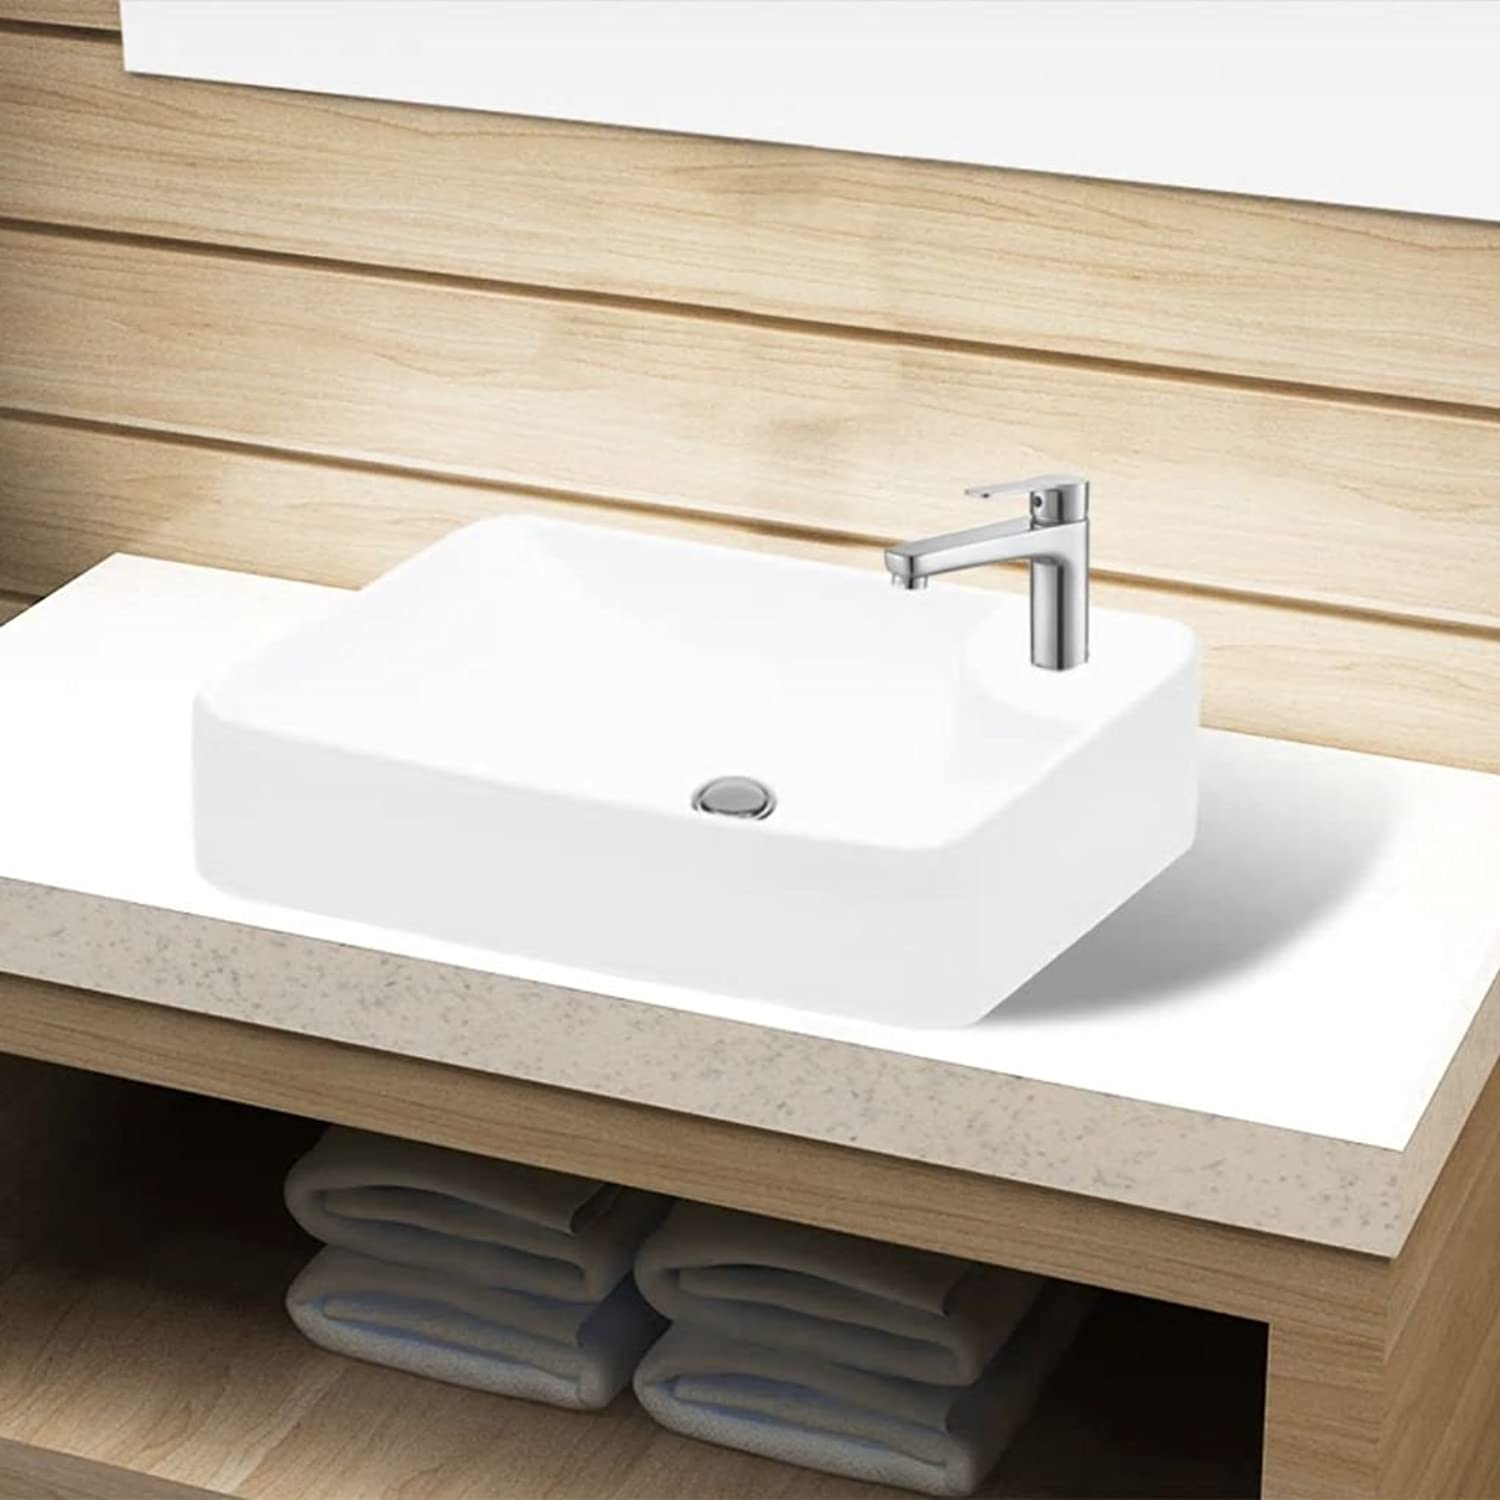 Xingshuoonline Ceramic Sink Tap with Tap Hole White Wash Basin Tap Hole Diameter  3.5 cm